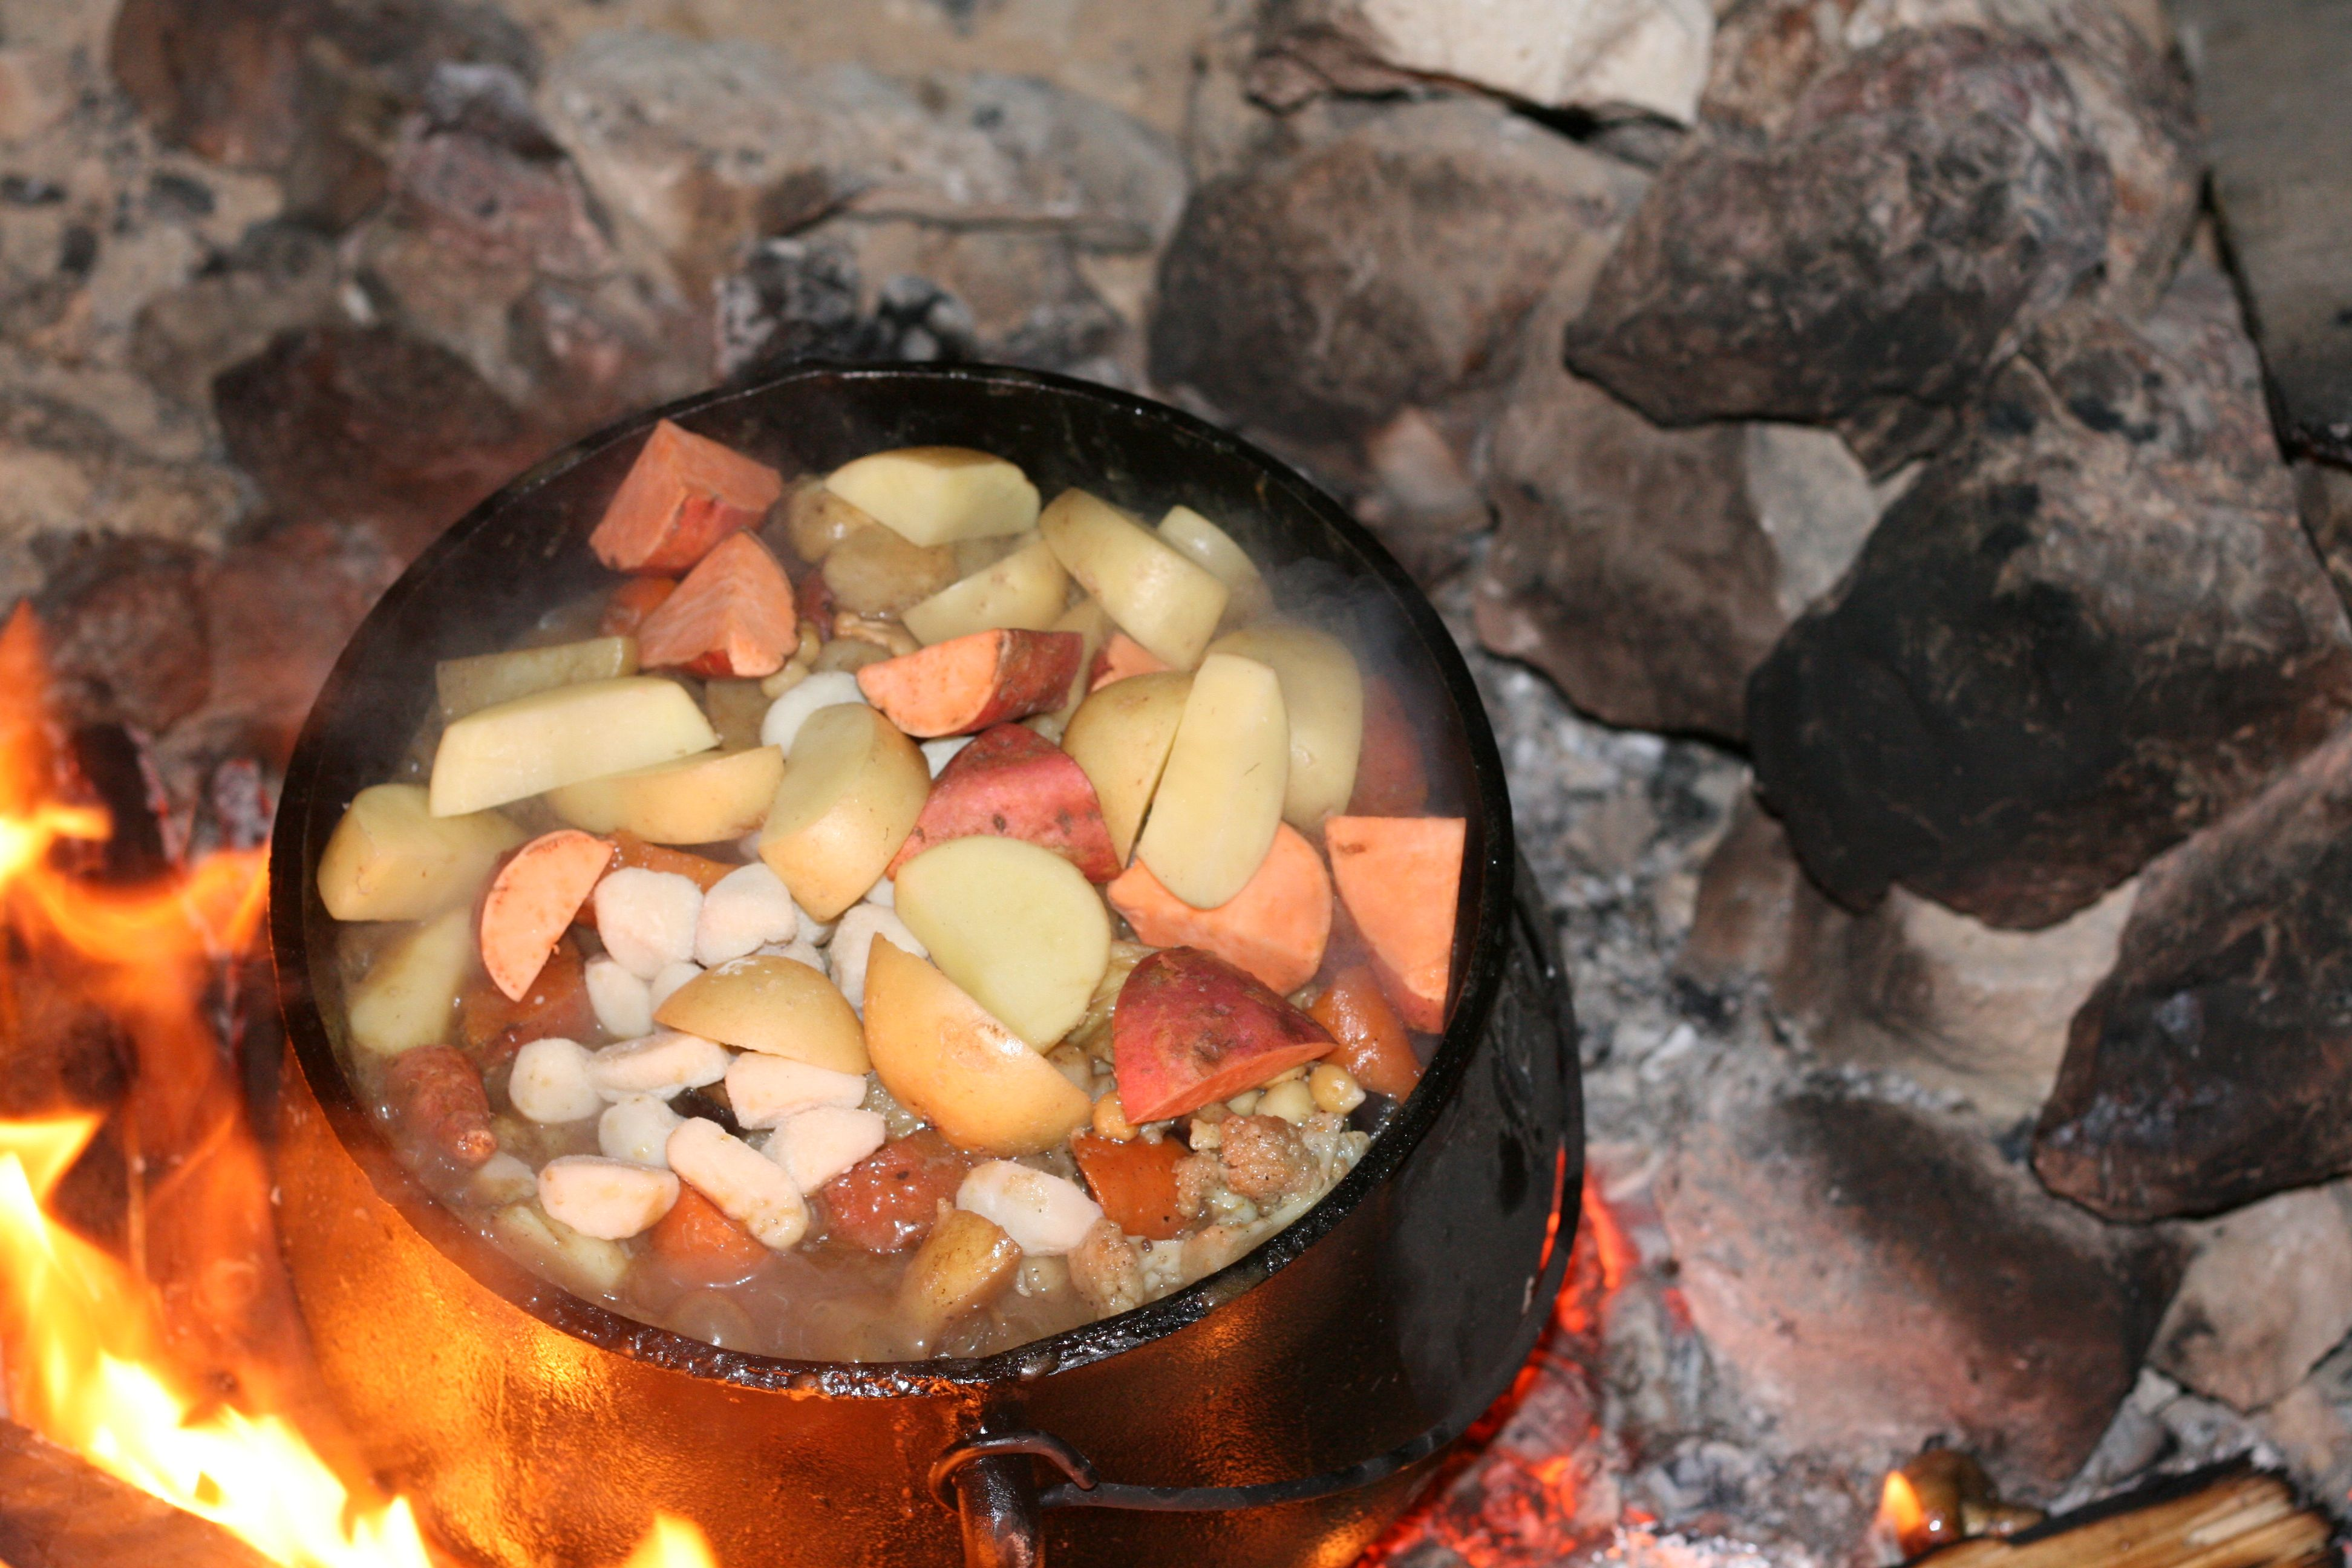 Poyke. Israelis adopted this south african caldron as their solution for dinner while camping out Photography by: Matan Kehat